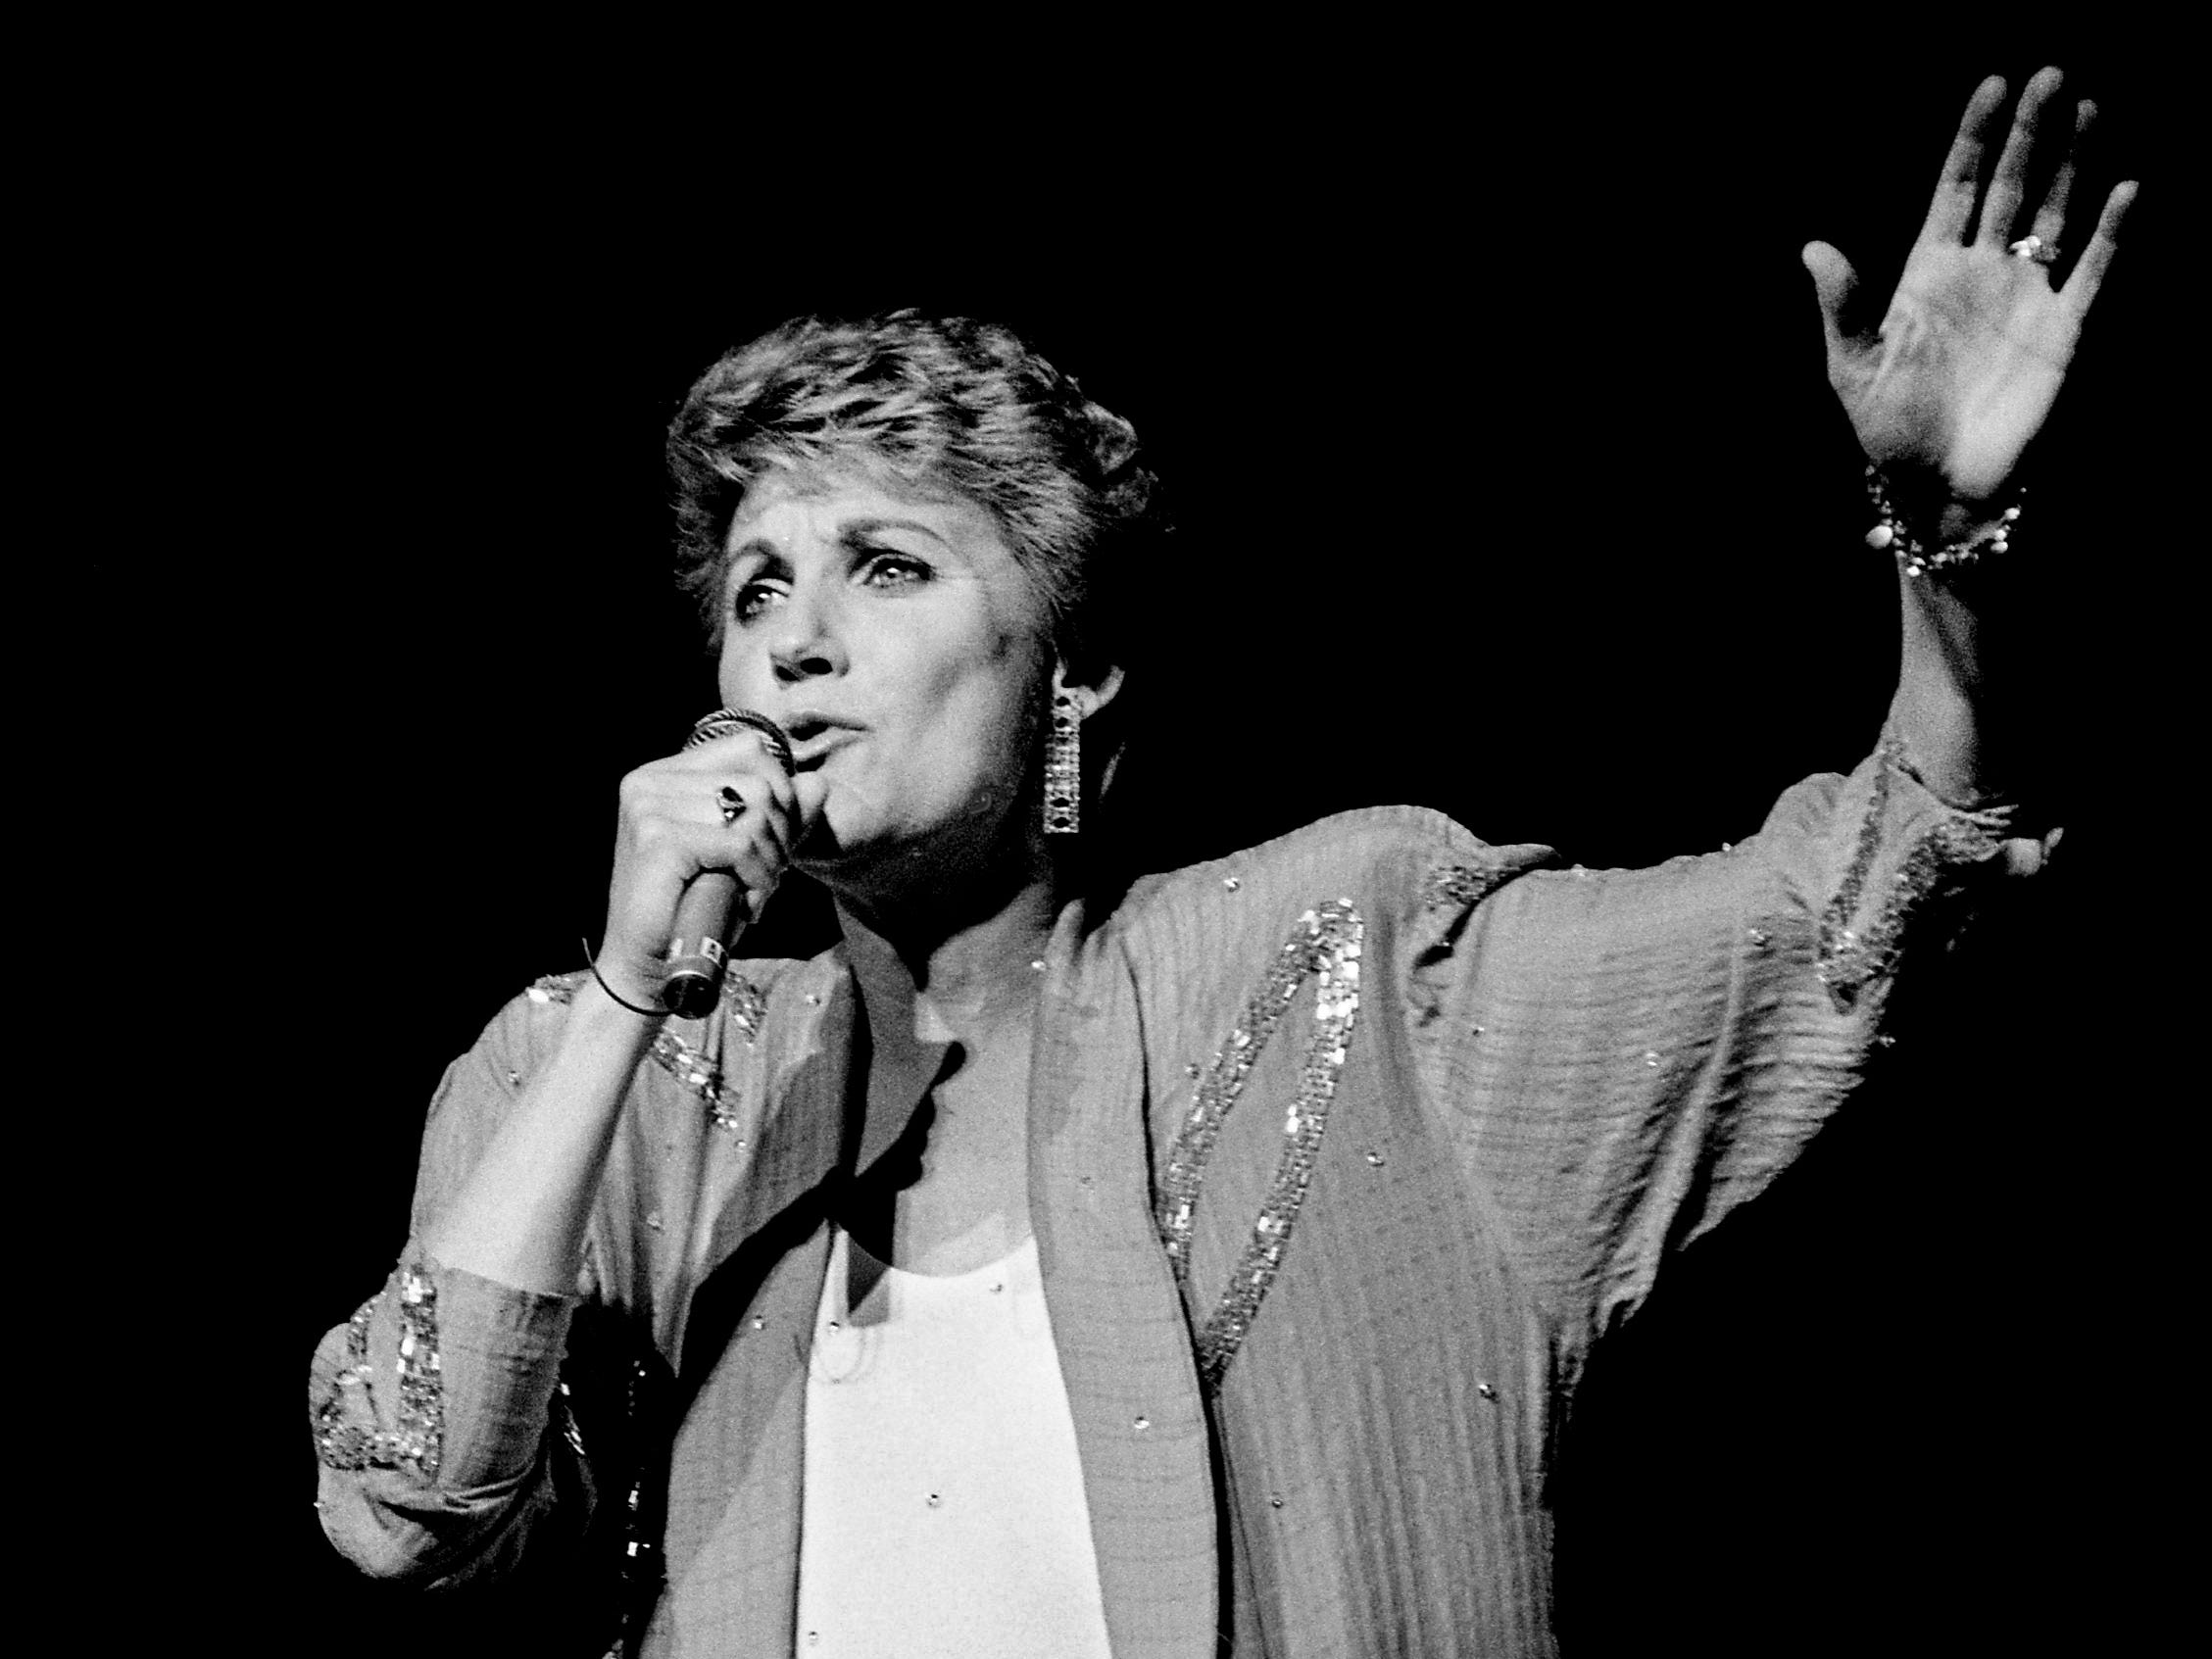 Anne Murray sings one of her many hits during a concert at the Grand Ole Opry House on Nov. 16, 1988, to benefit the Nashville Songwriters Association.